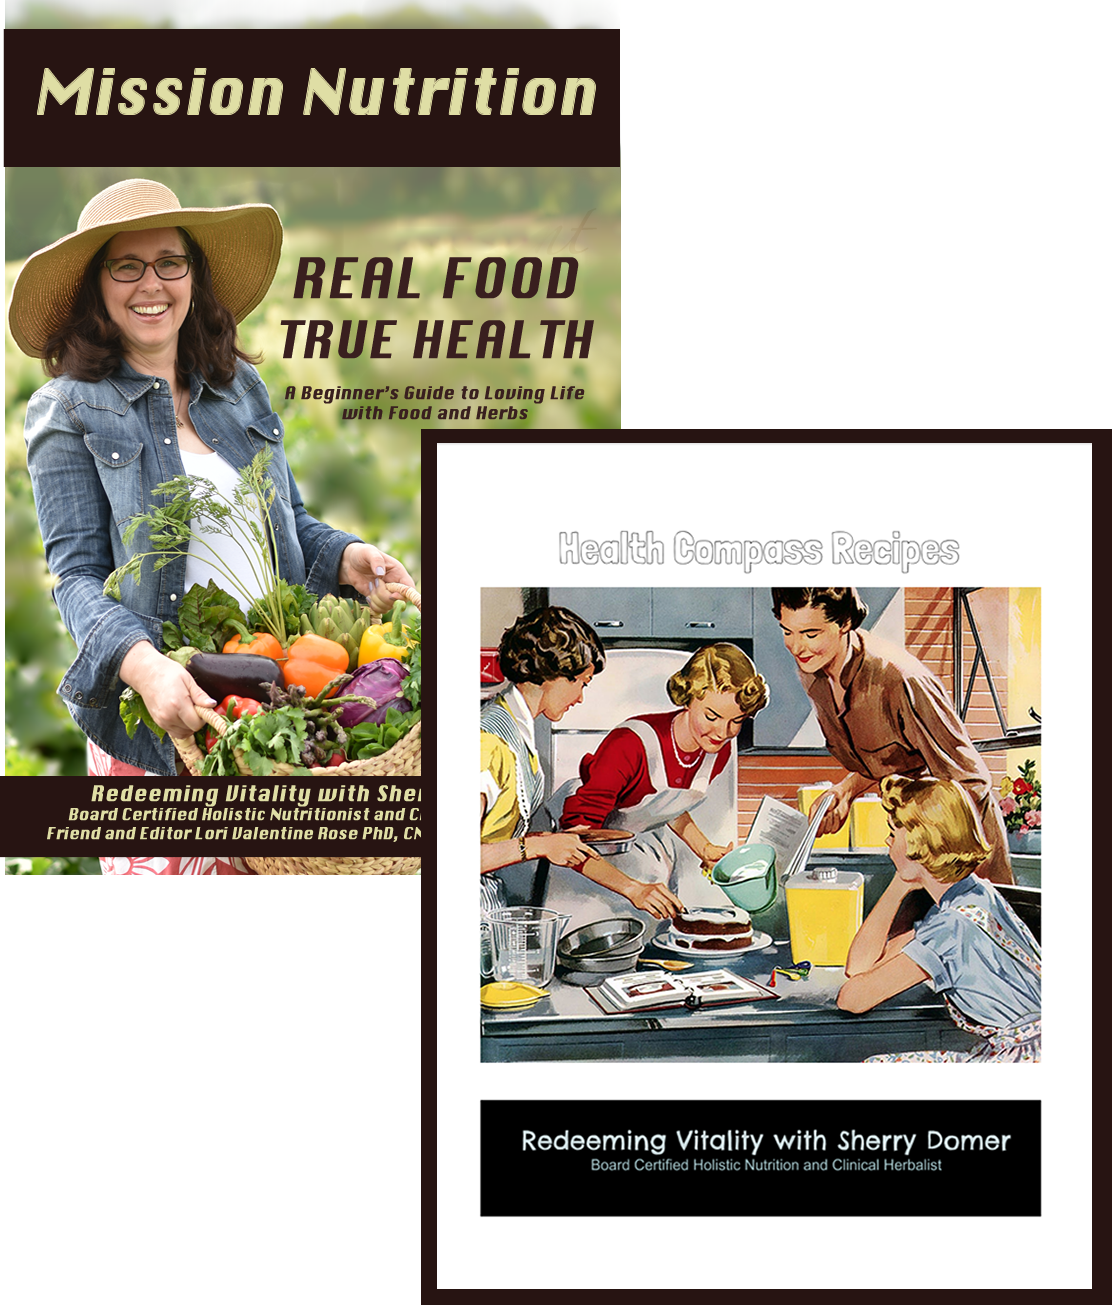 mission nutrition book promotion